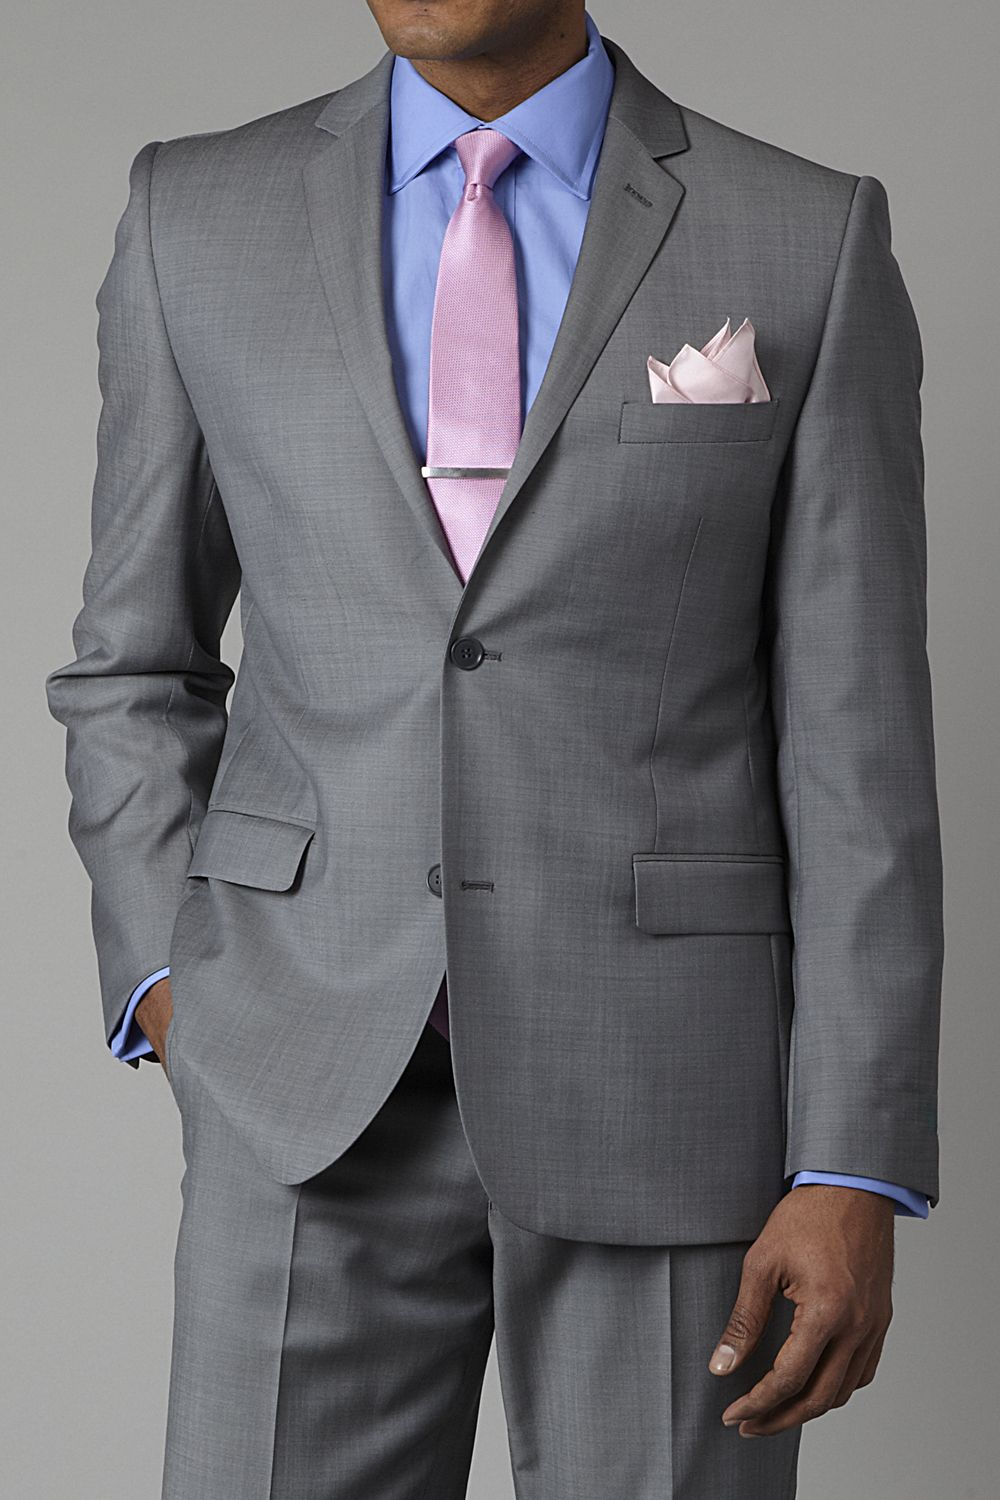 grey suit - Google Search | Grey Suit | Pinterest | Moss bros